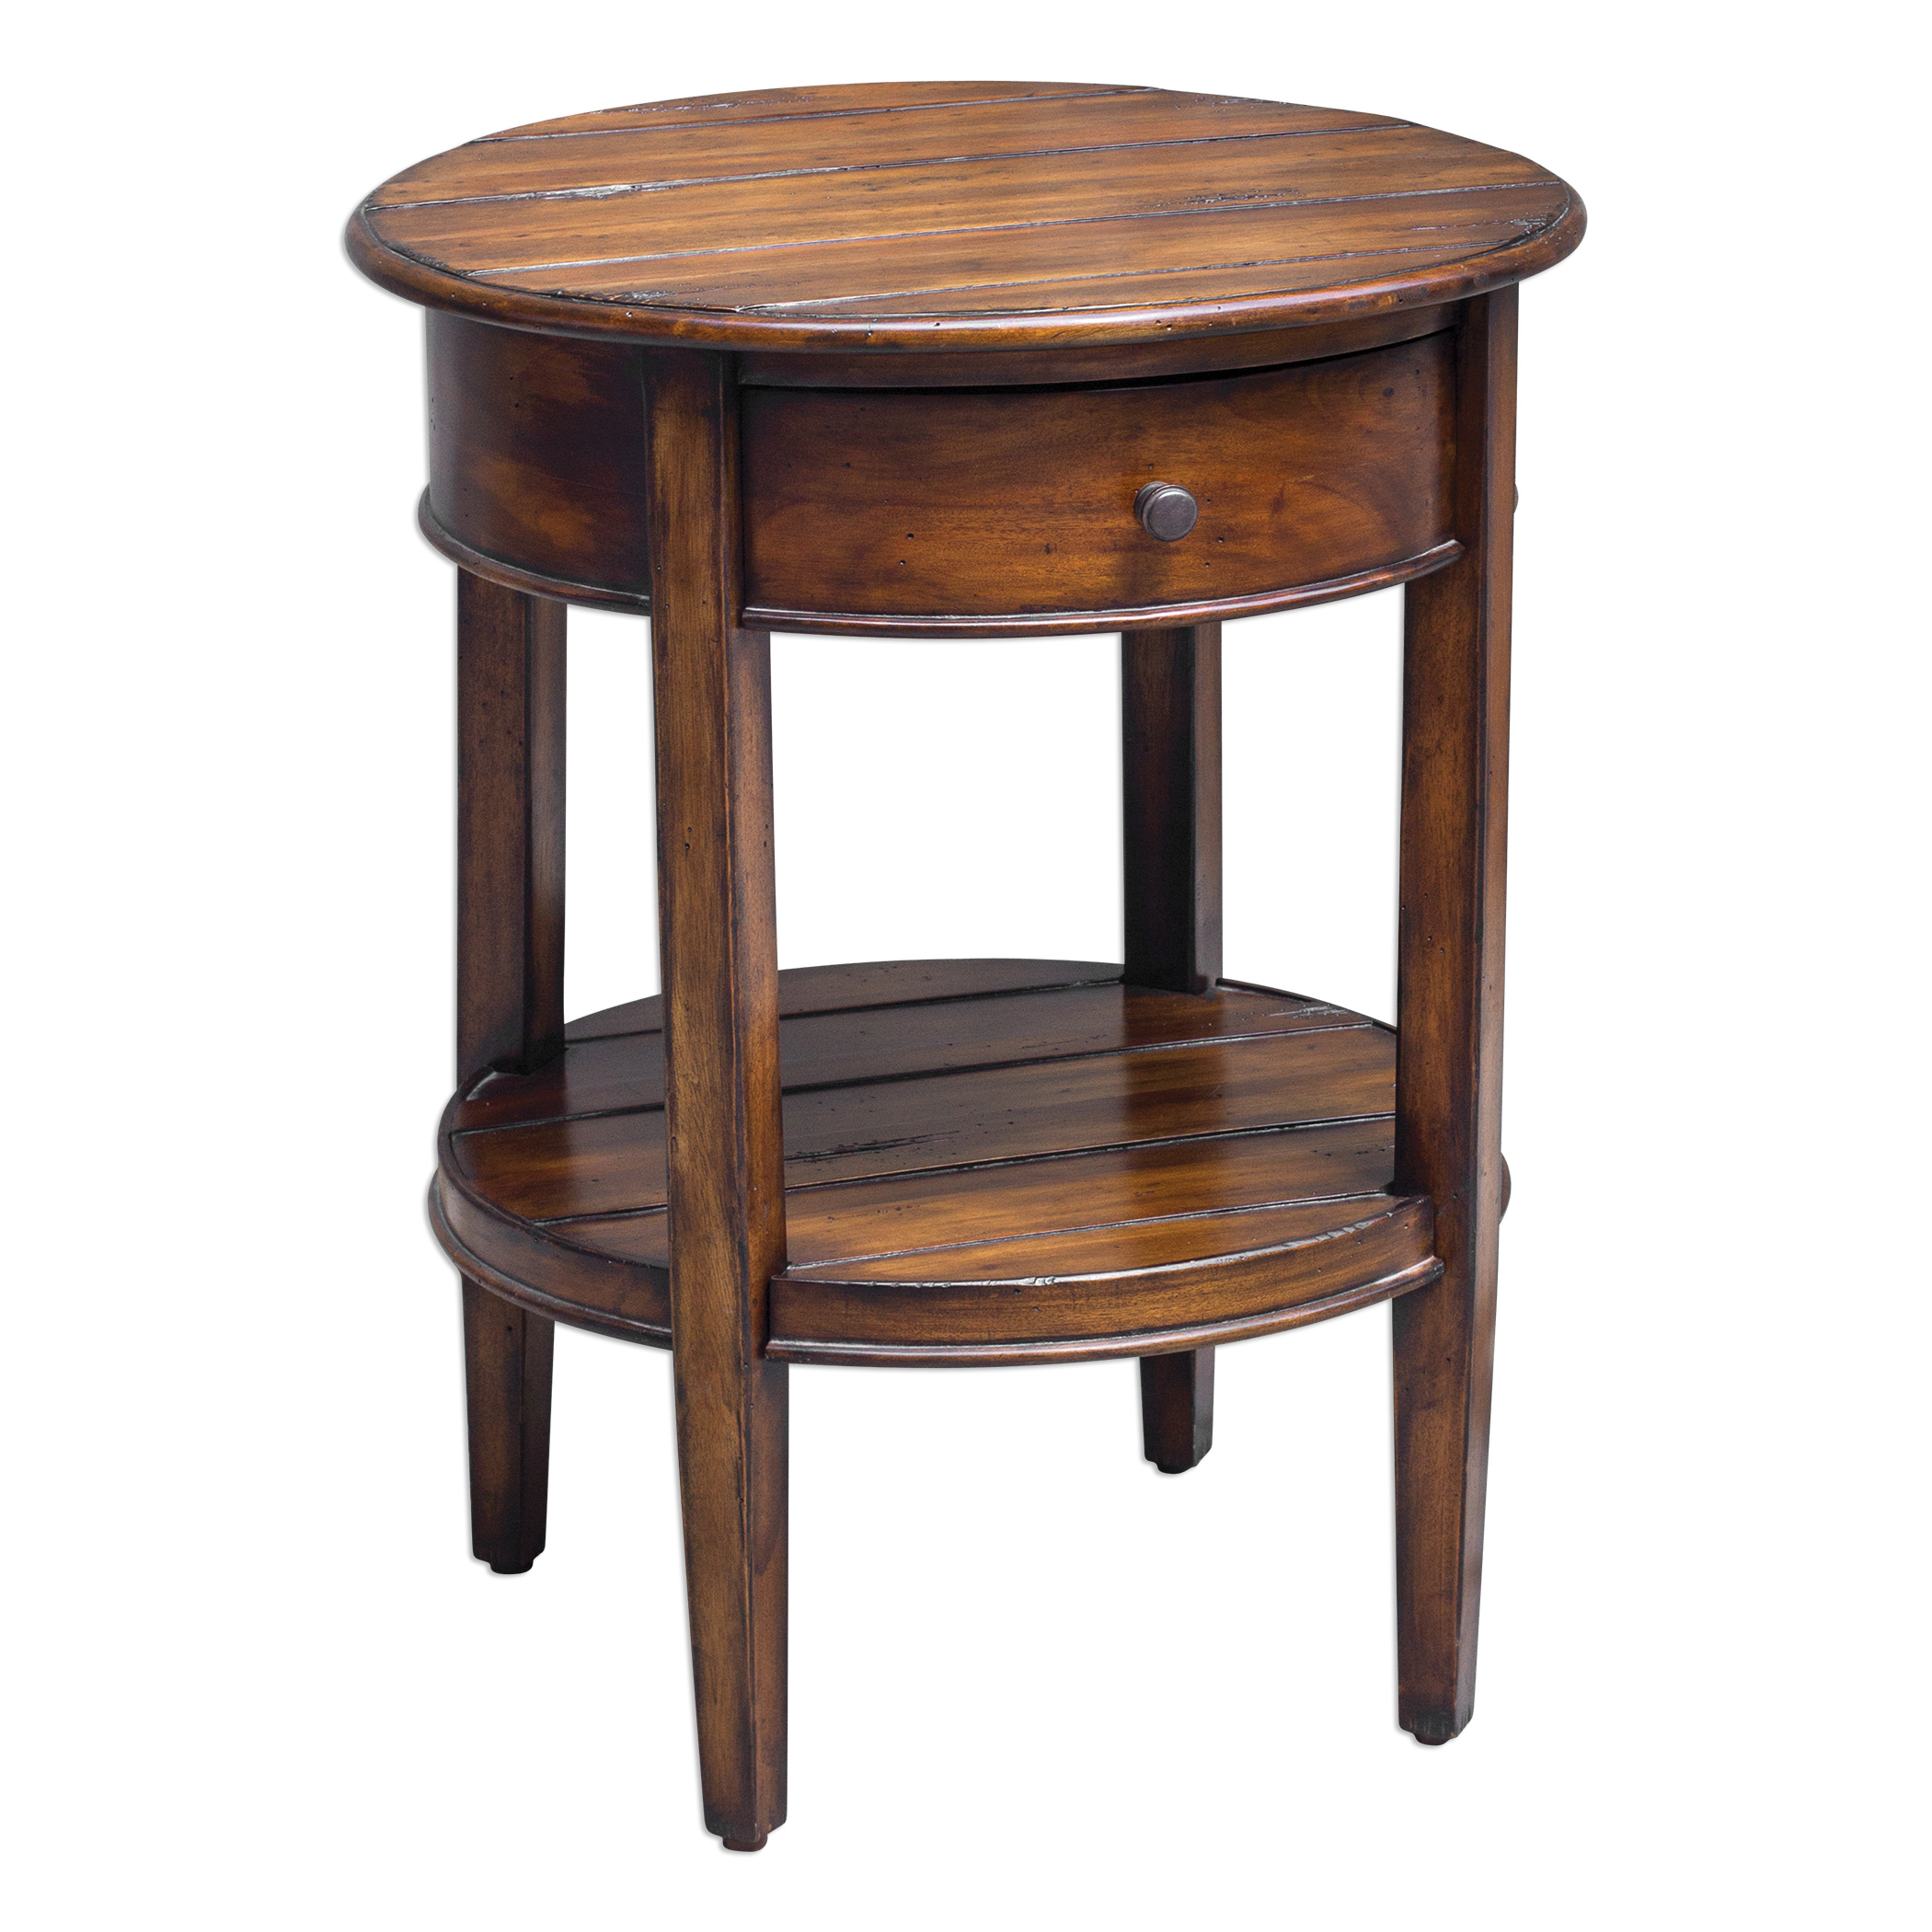 Uttermost Accent Furniture Ranalt Round Accent Table - Item Number: 25710